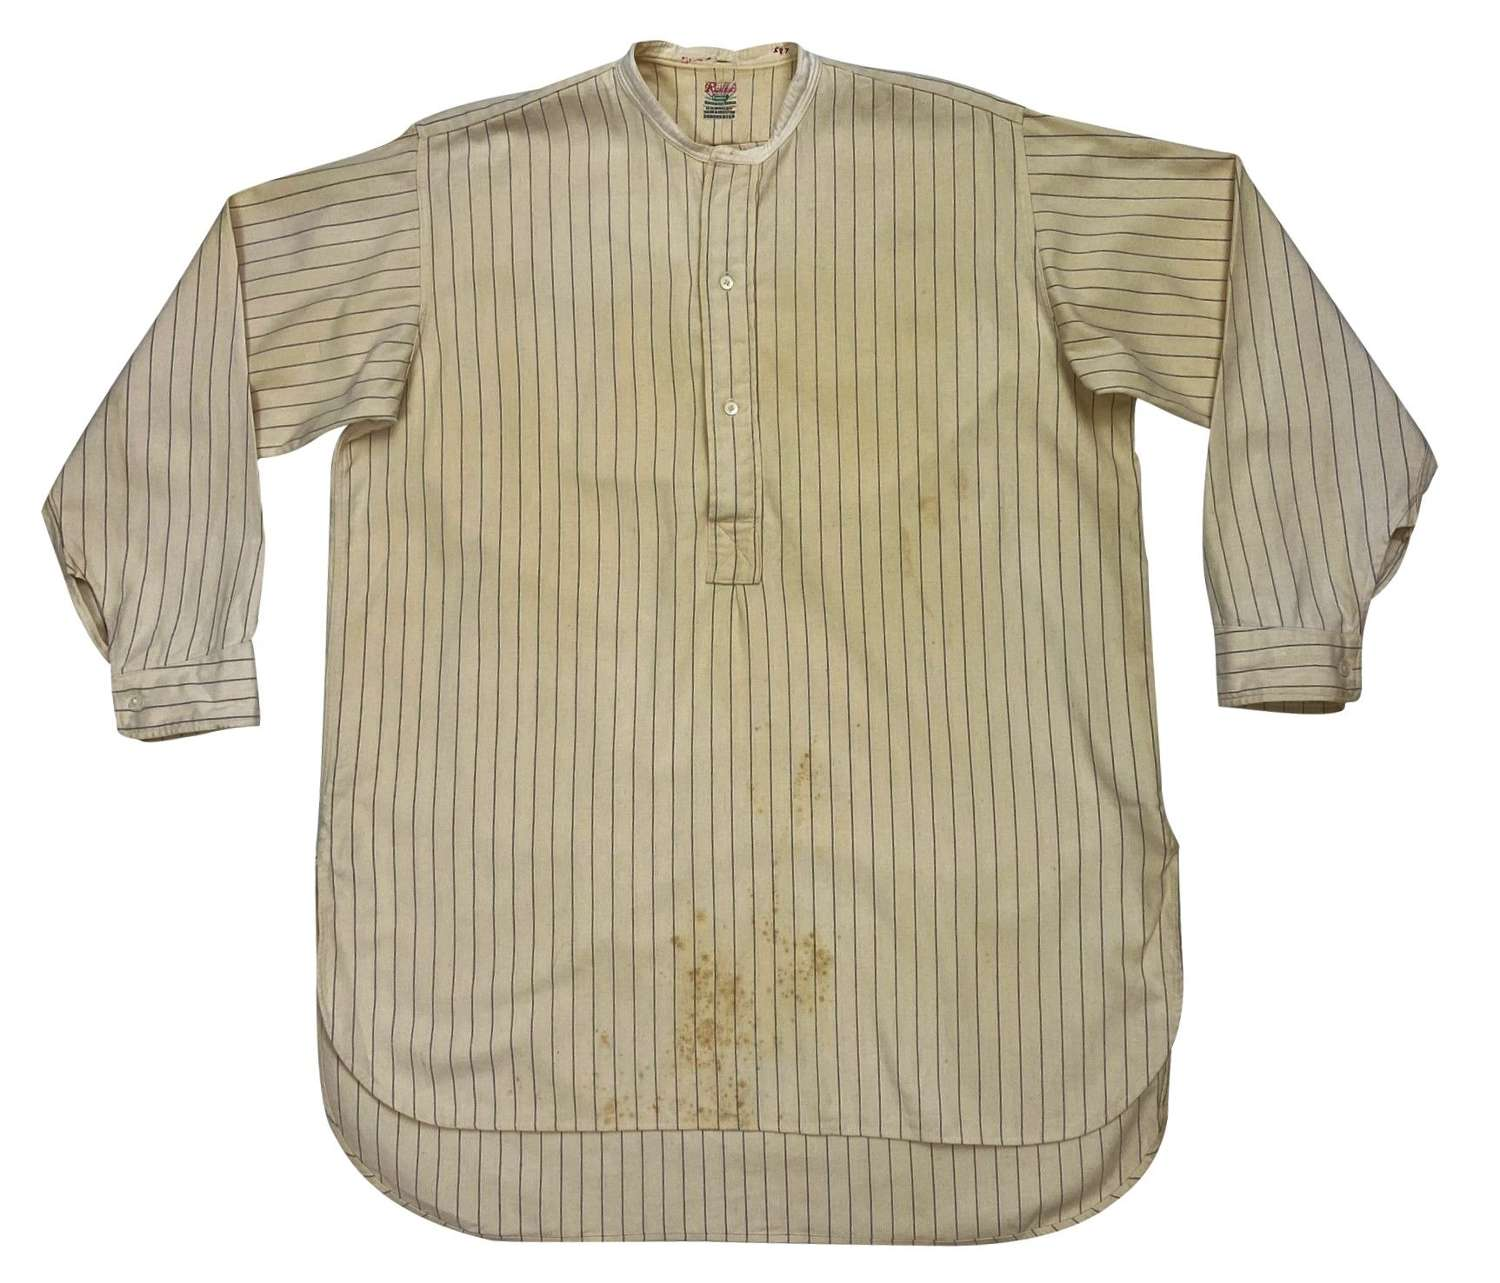 Original 1930s Men's Collarless Wool Shirt by 'Radiac' H. C. Bailey